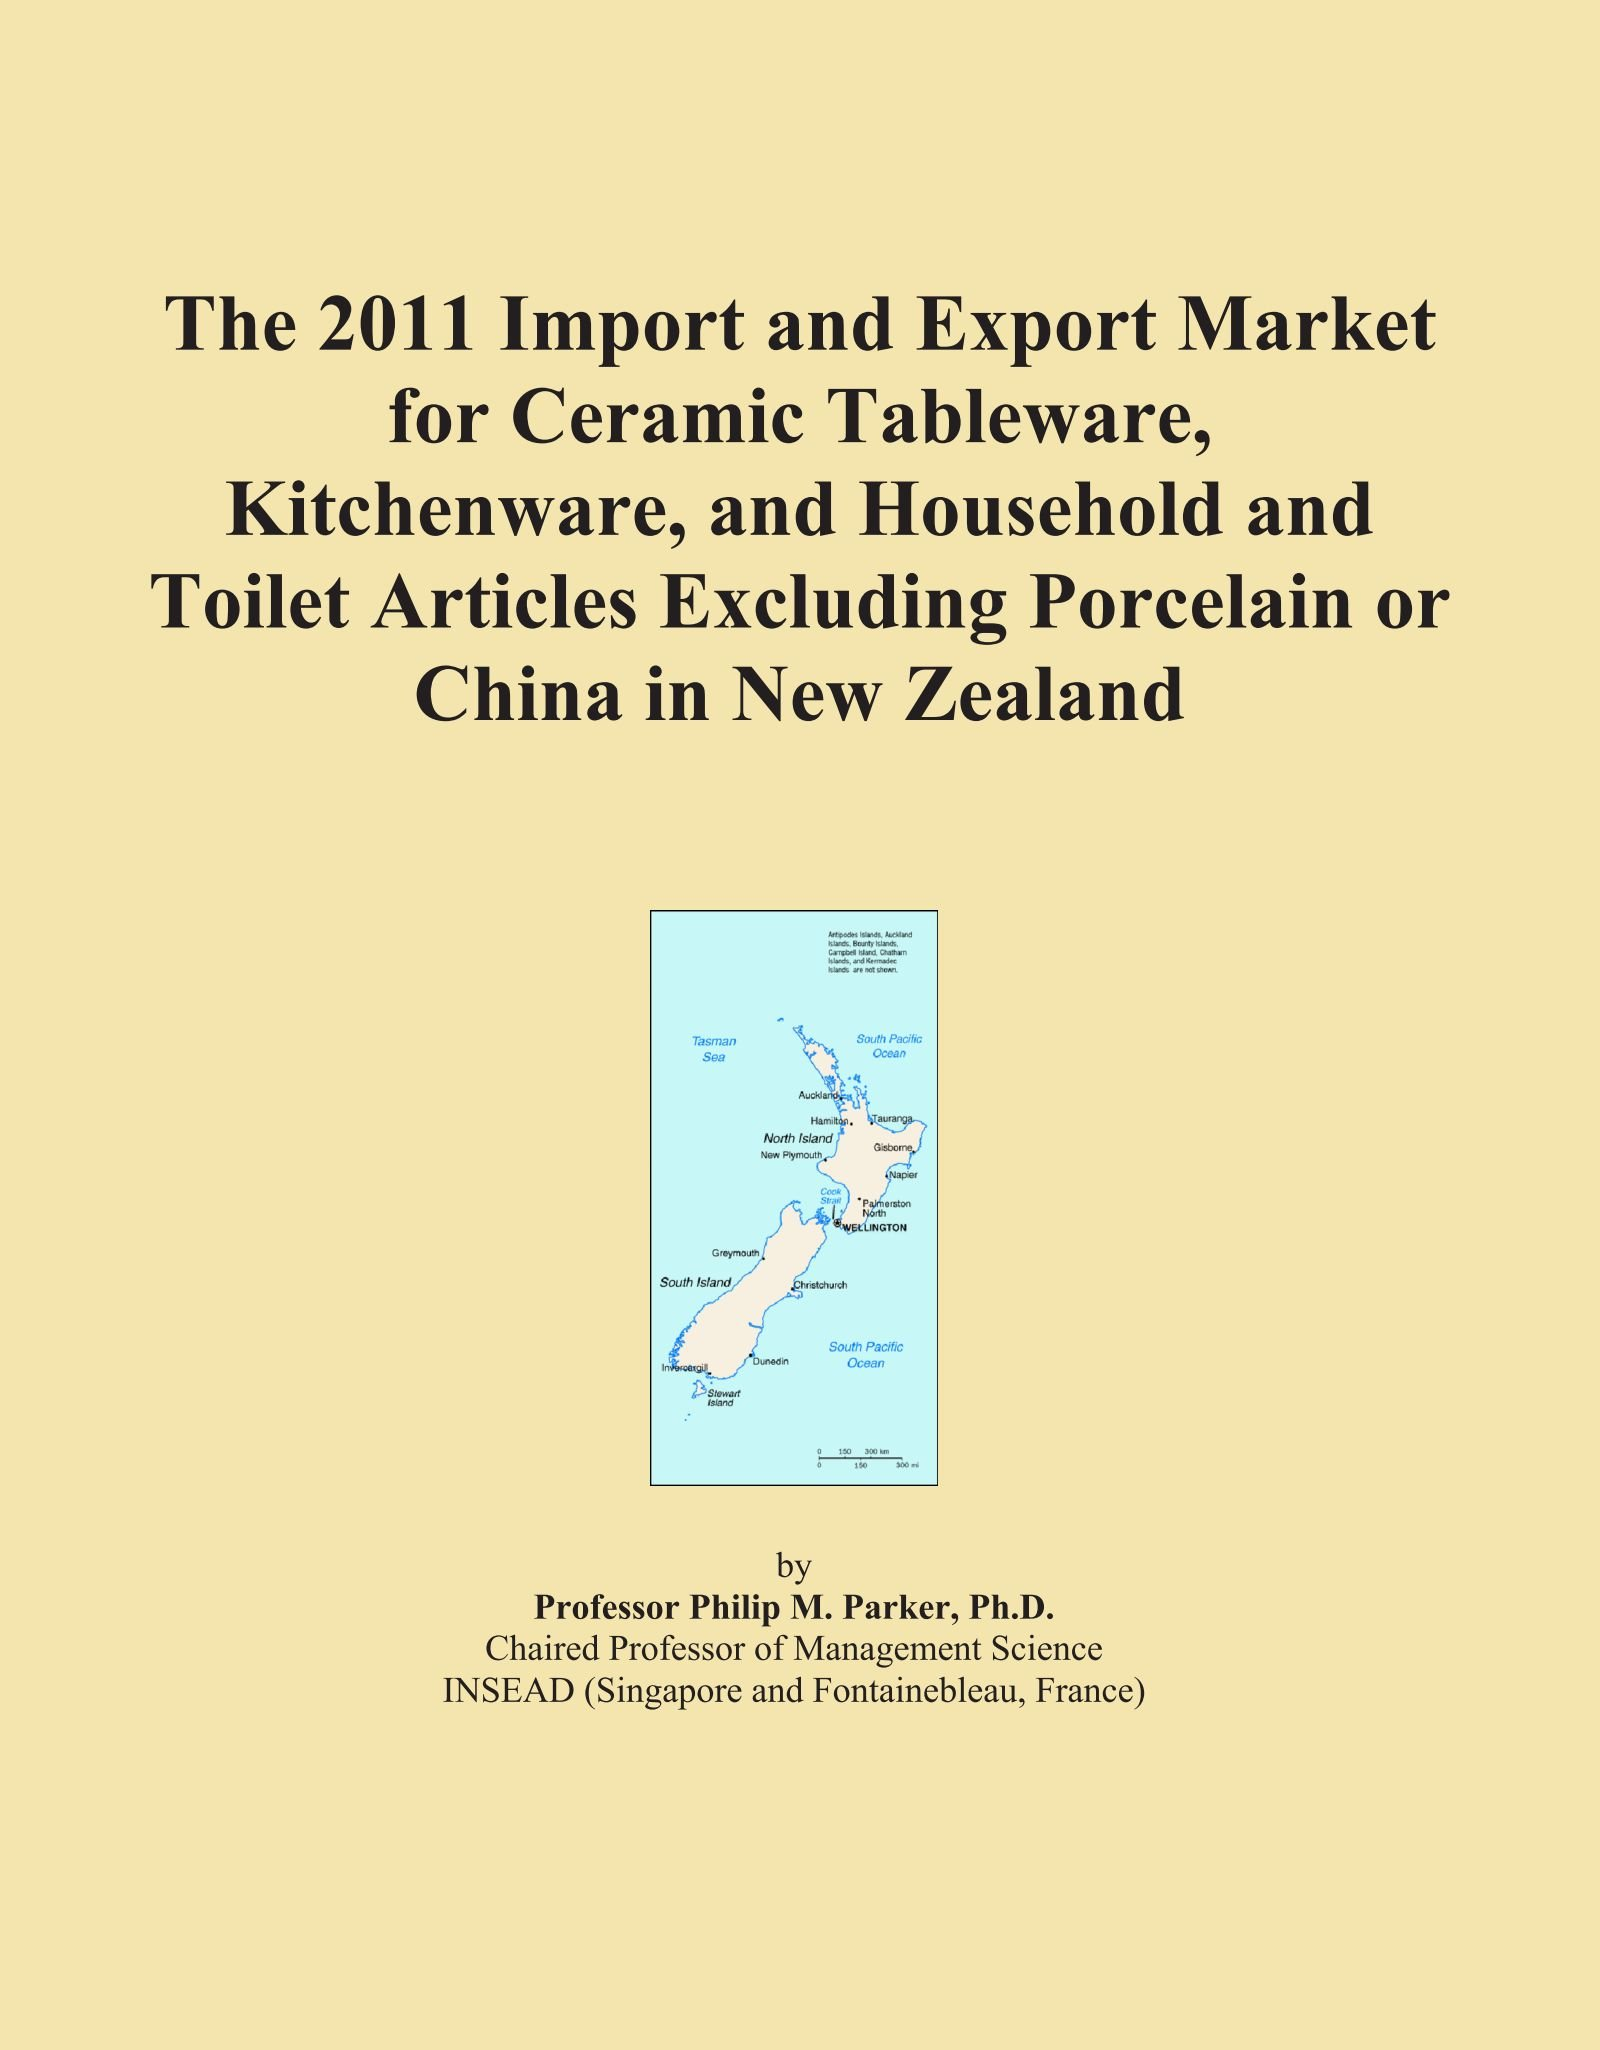 Download The 2011 Import and Export Market for Ceramic Tableware, Kitchenware, and Household and Toilet Articles Excluding Porcelain or China in New Zealand ebook